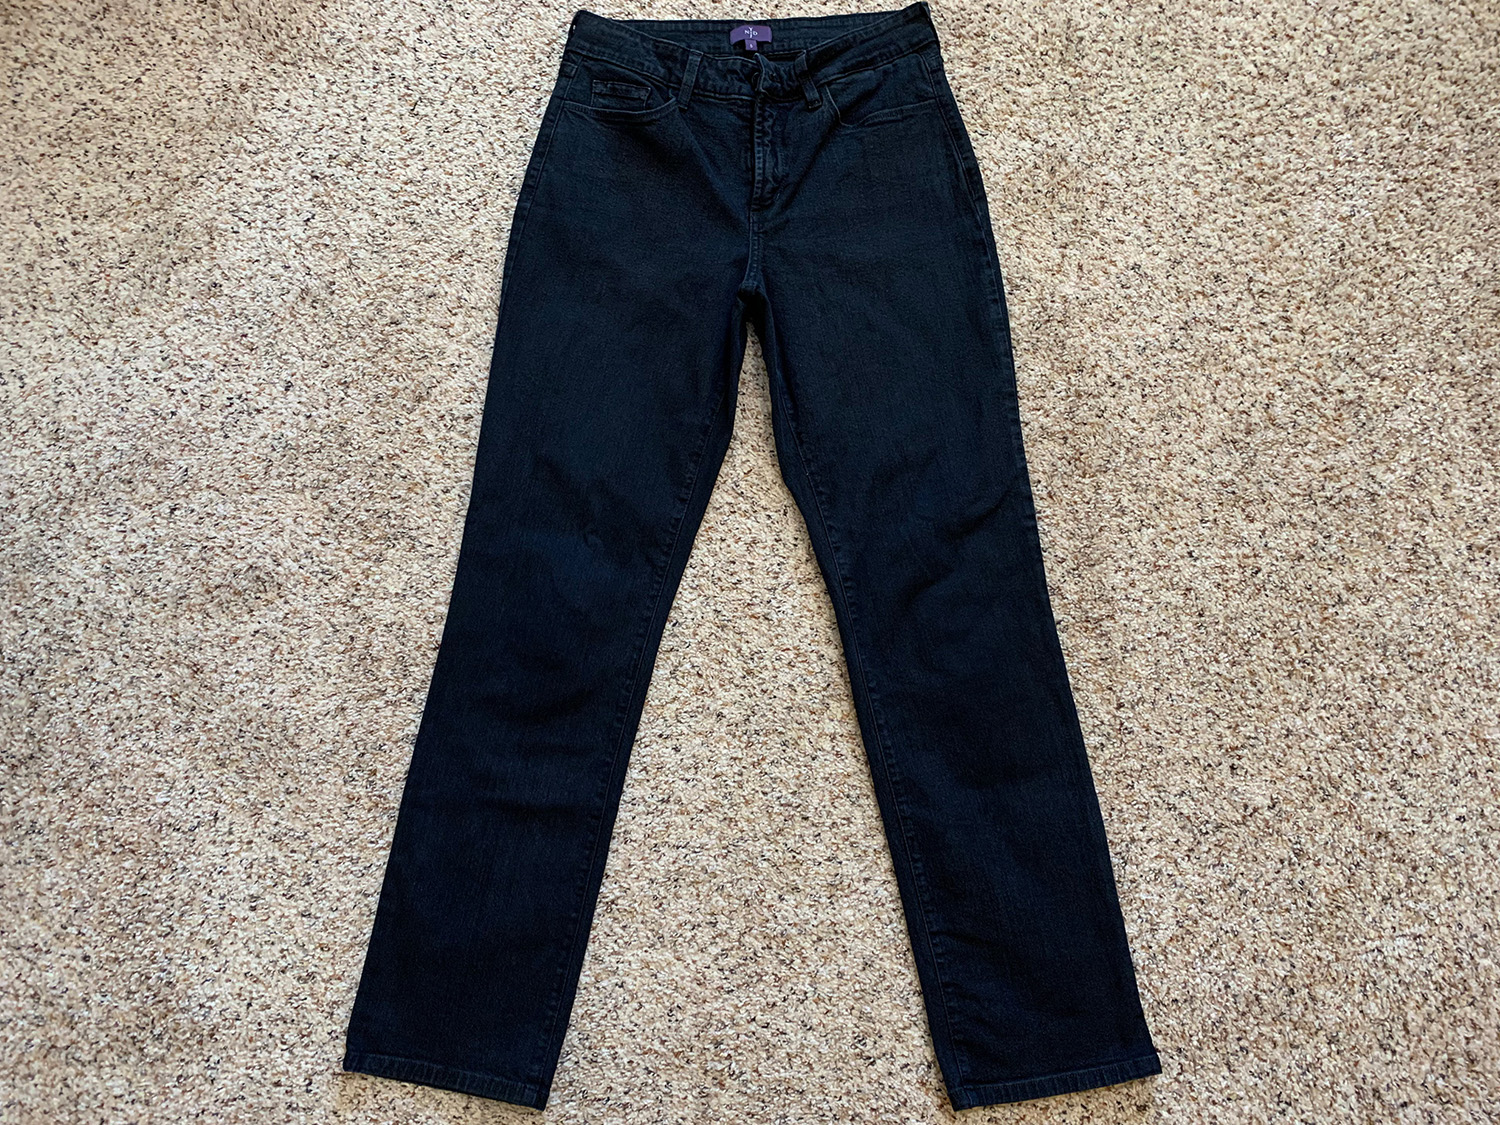 NYDJ Not Your Daughters Jeans Womens Black Lift Tuck Skinny Sz 6